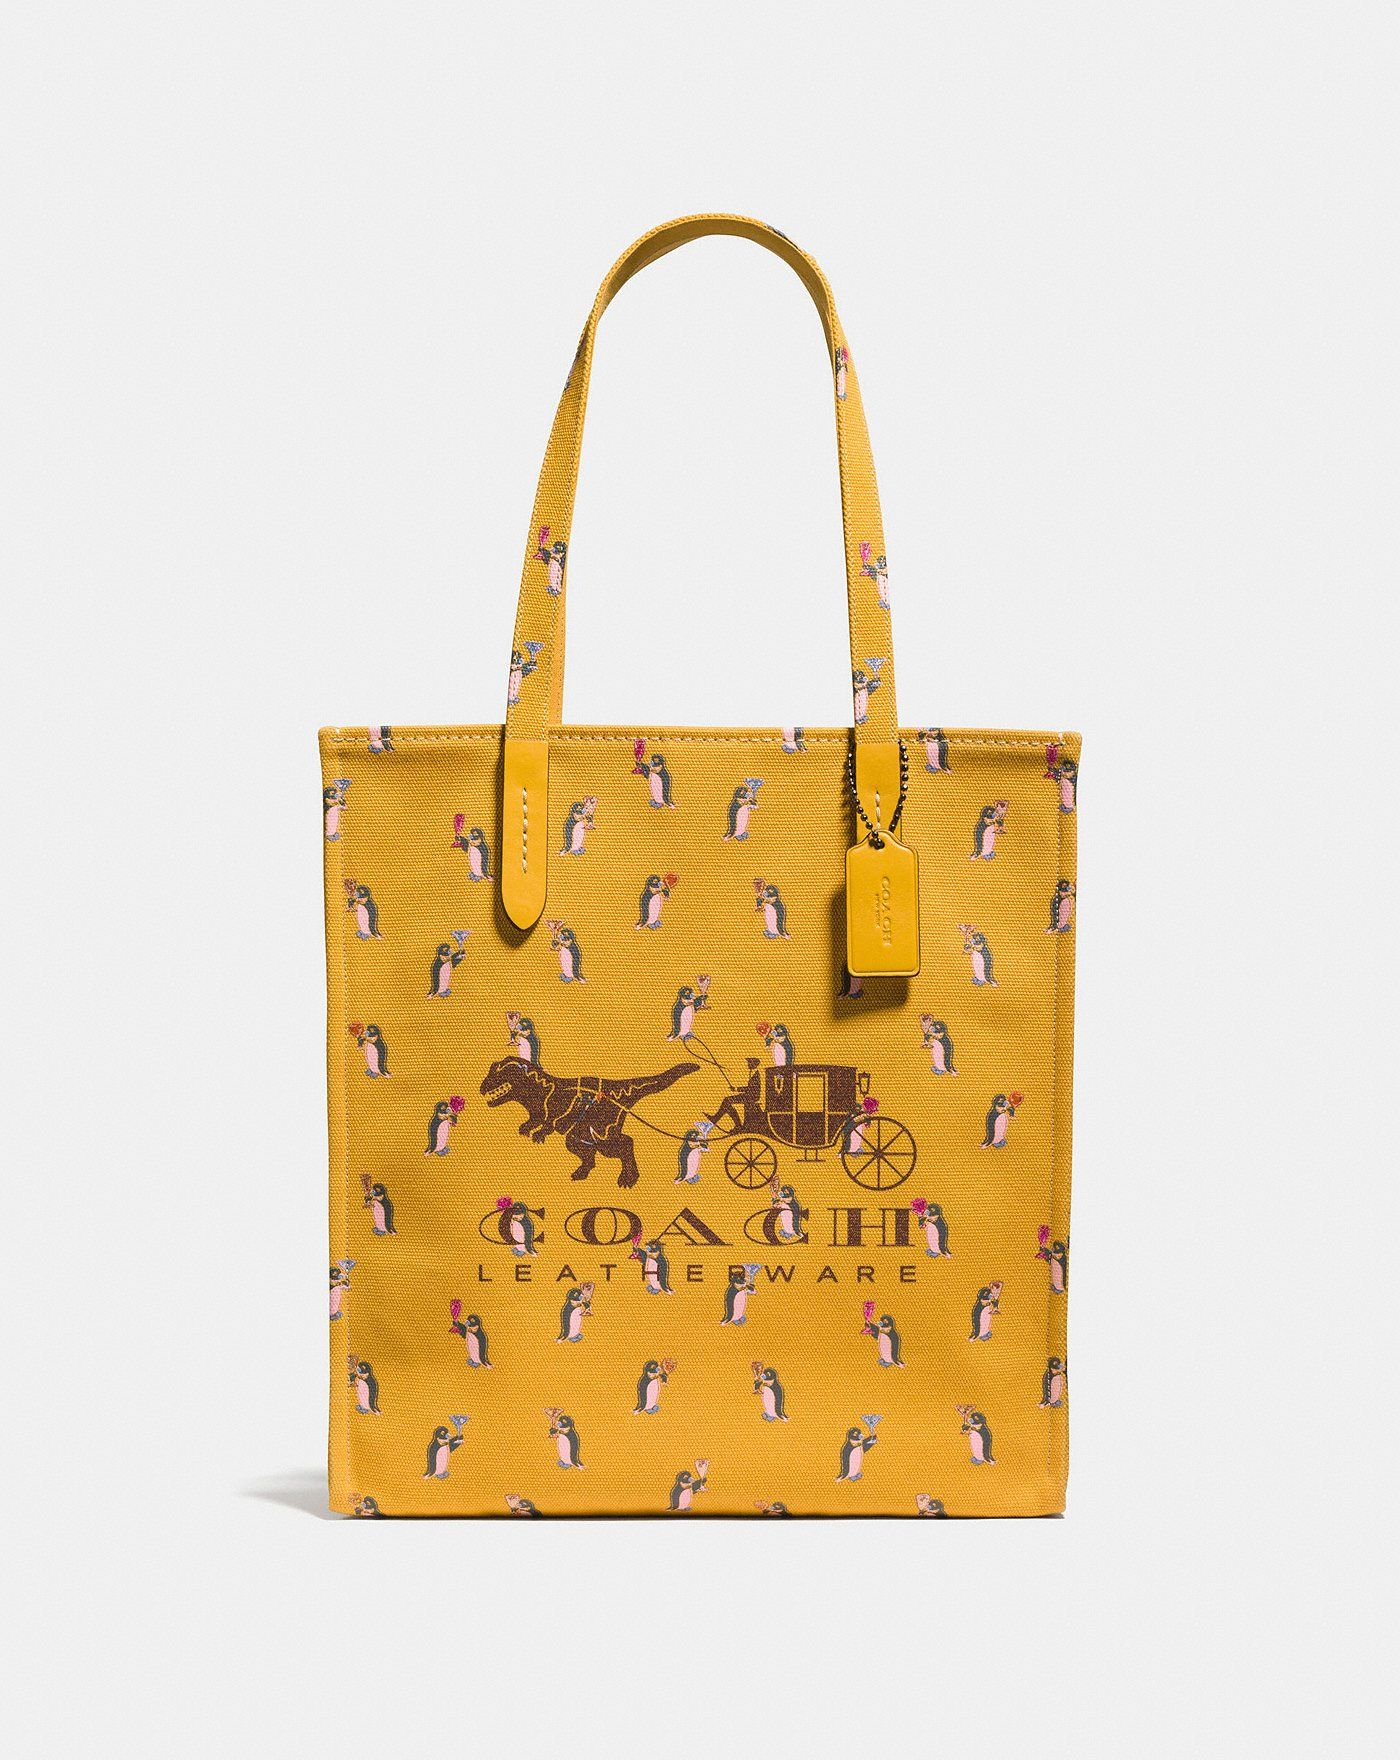 138c77a34c Rexy and carriage tote | Brands I Like | Bags, Coach handbags ...